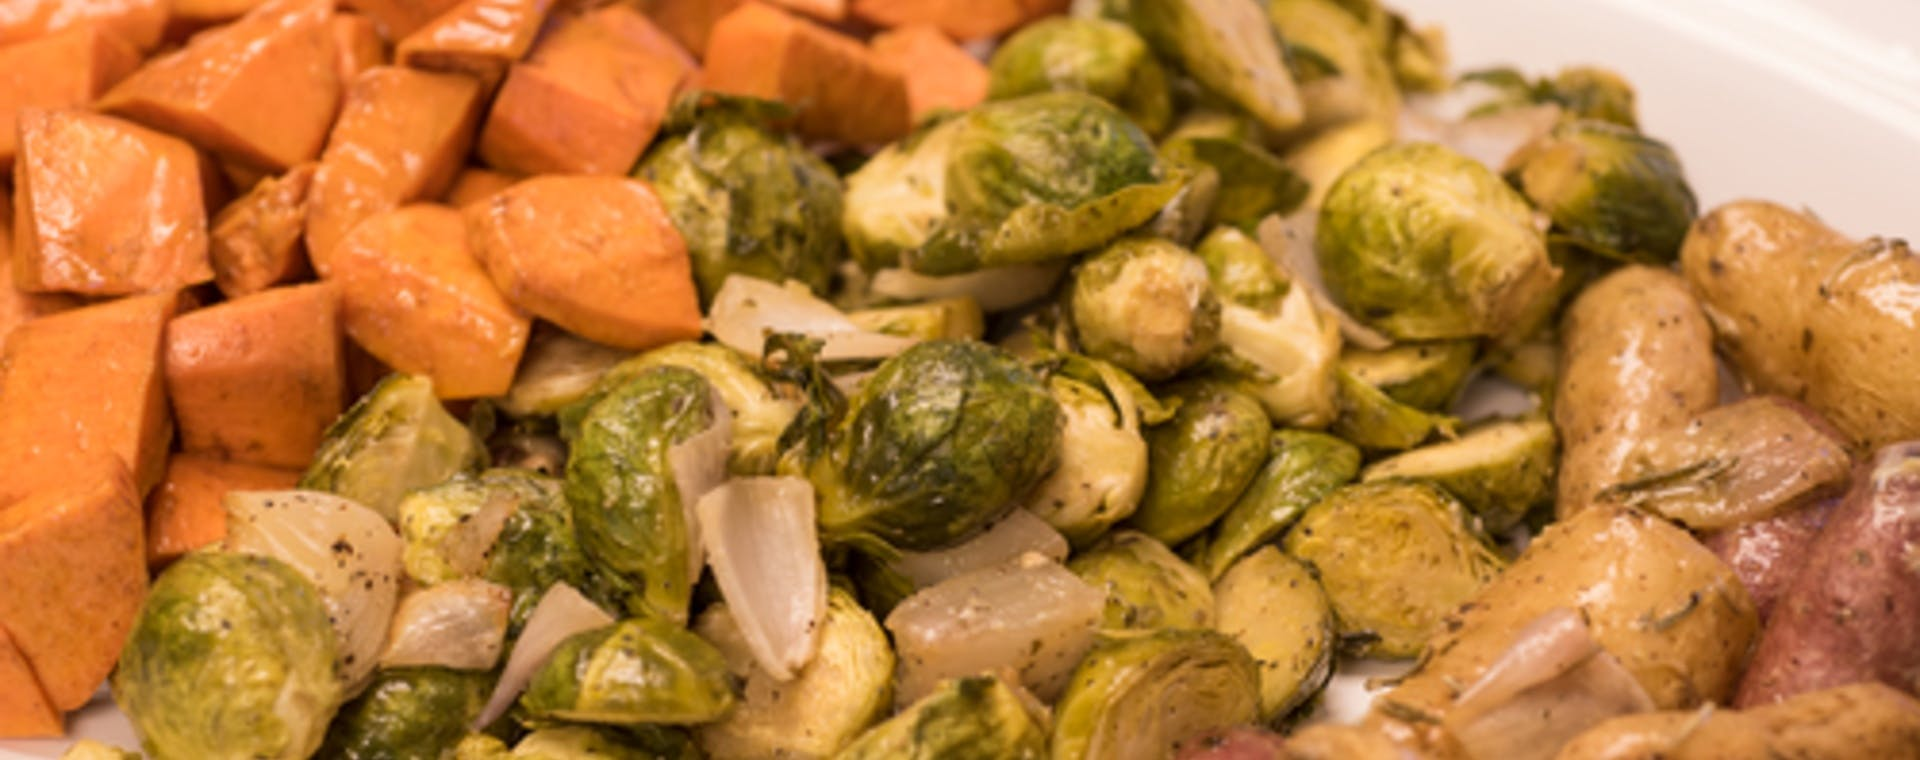 Oven-Roasted Vegetables with Epicurean Butter